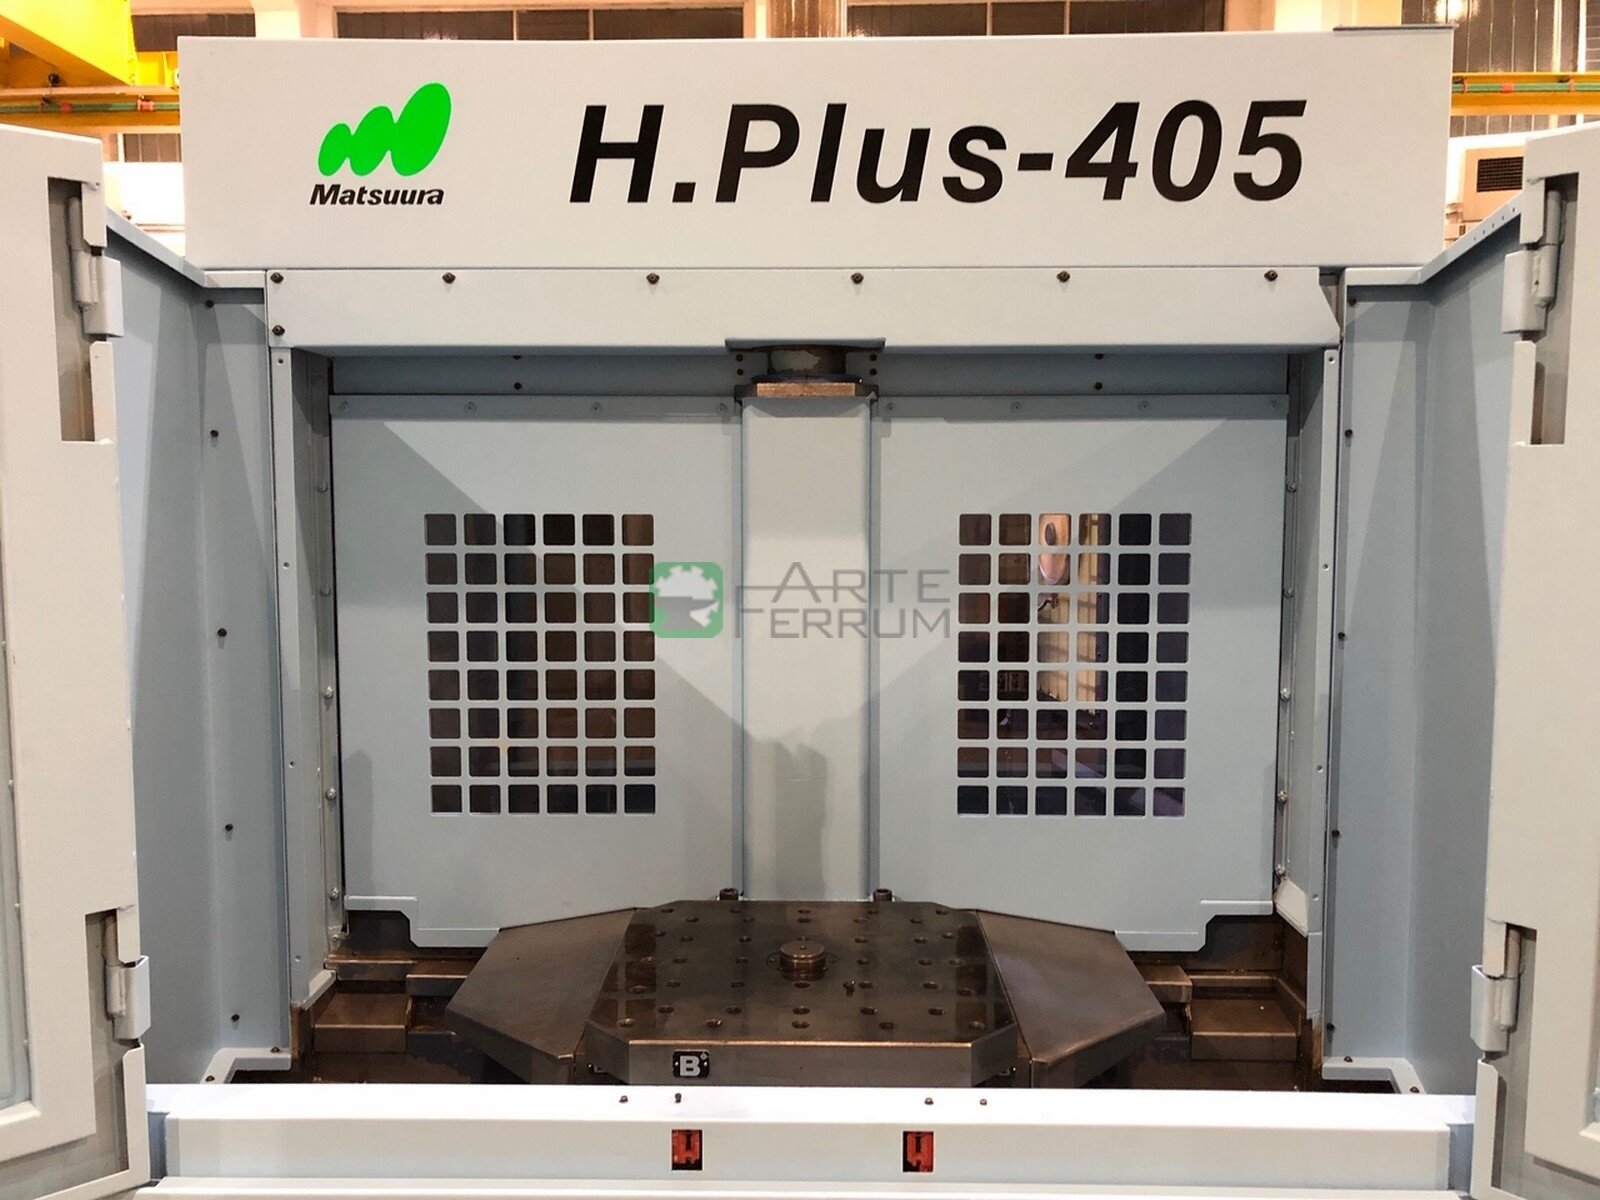 /en/matsuura-h-plus-405-horizontal-working-center-2-pallets-detail